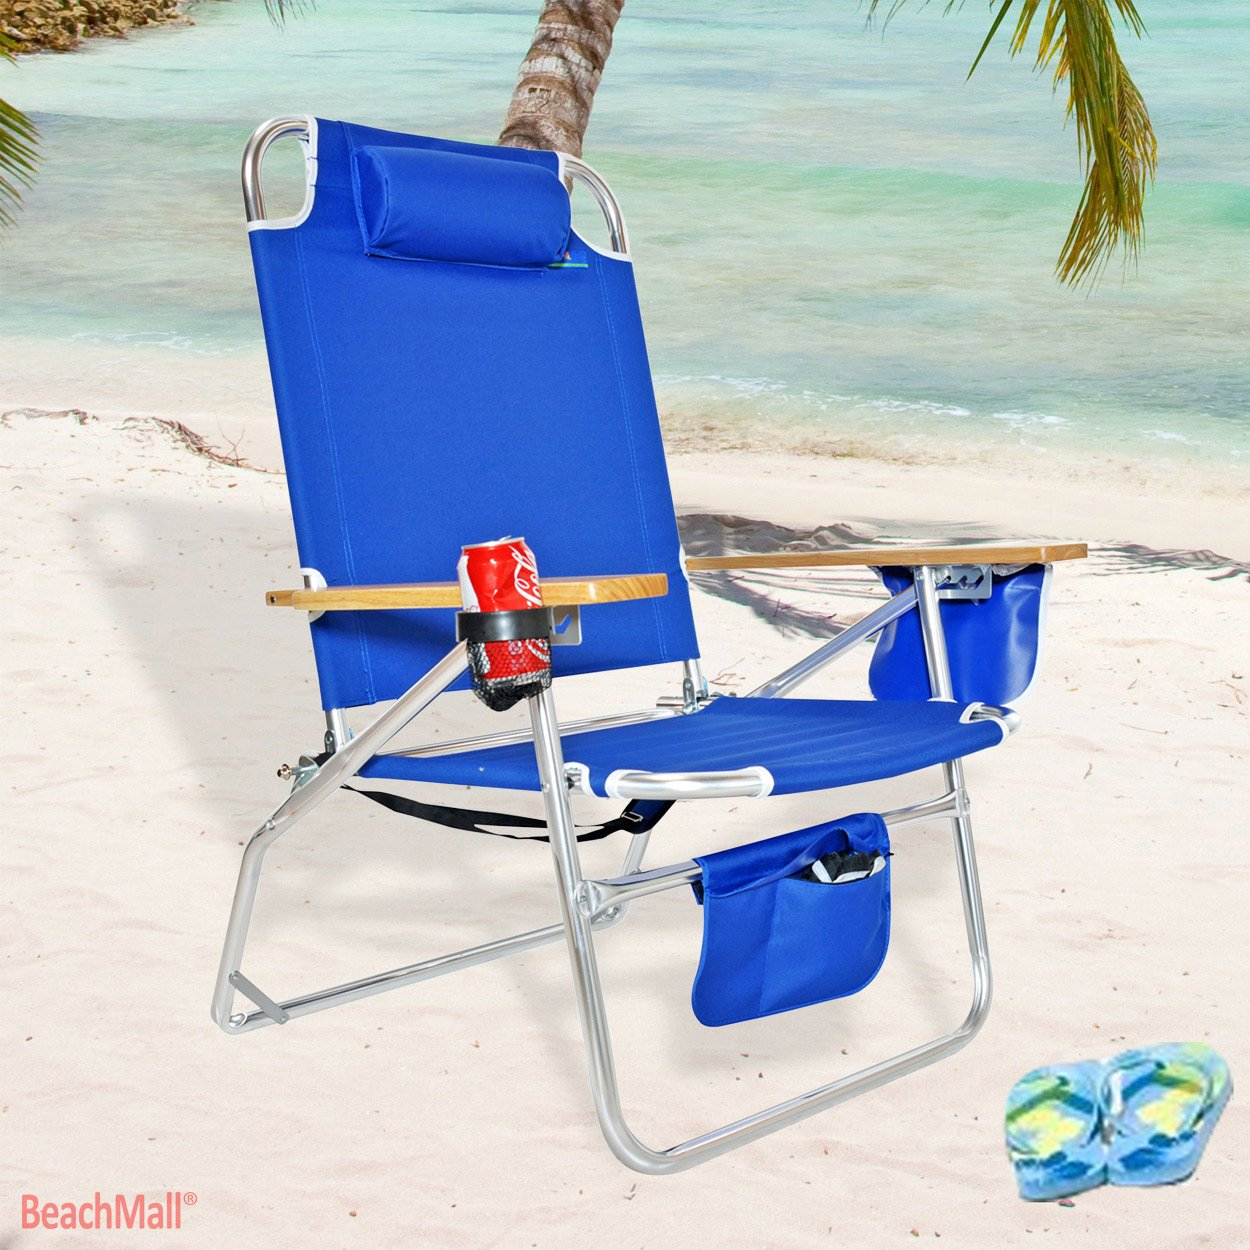 Beach Chairs For Heavy Person 500 Lb Beach Chairs For Obese People For Big And Heavy